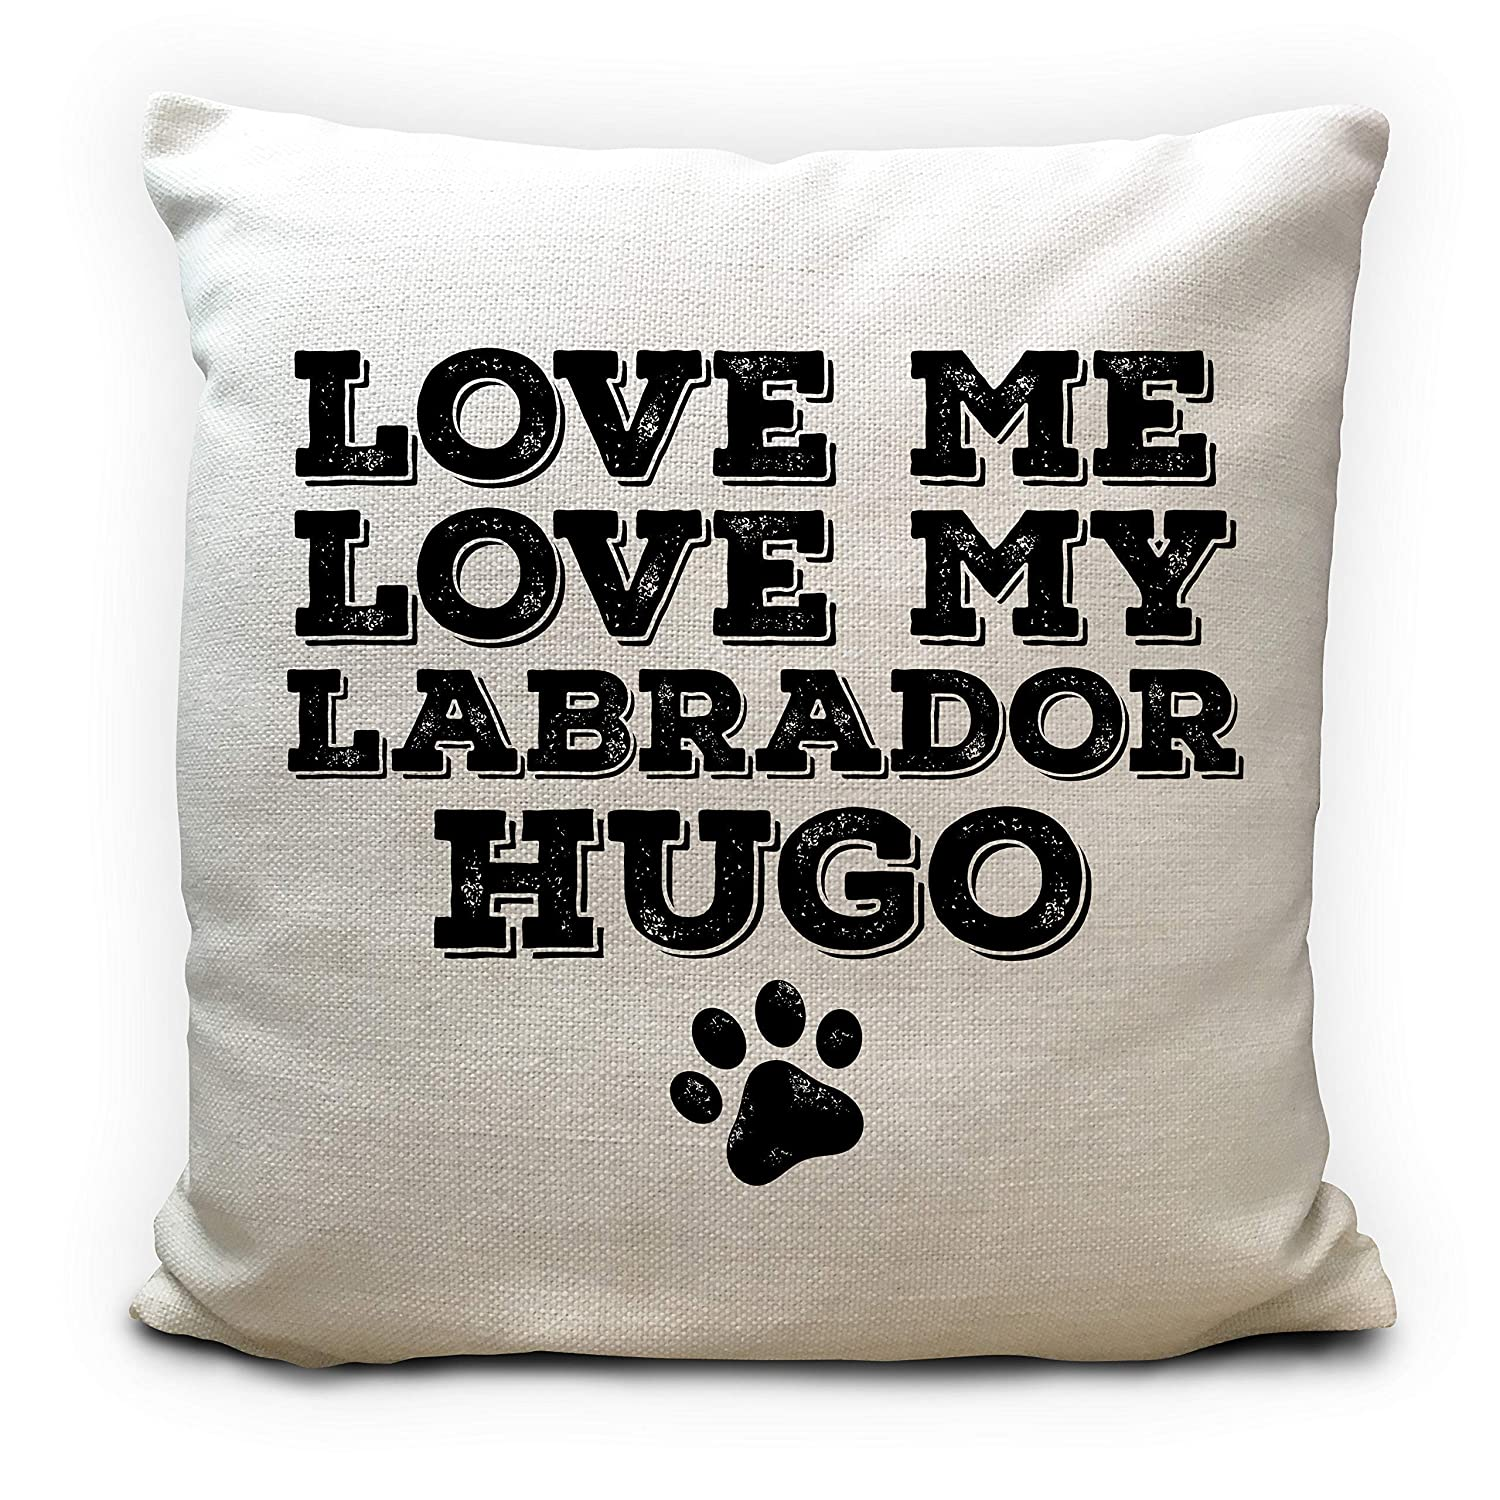 Personalised Dog Bed Cushion Cover Gift, Pillow Cover, Pet Breed and Name strong, Love Me Love my Dog 40cm 16 inches